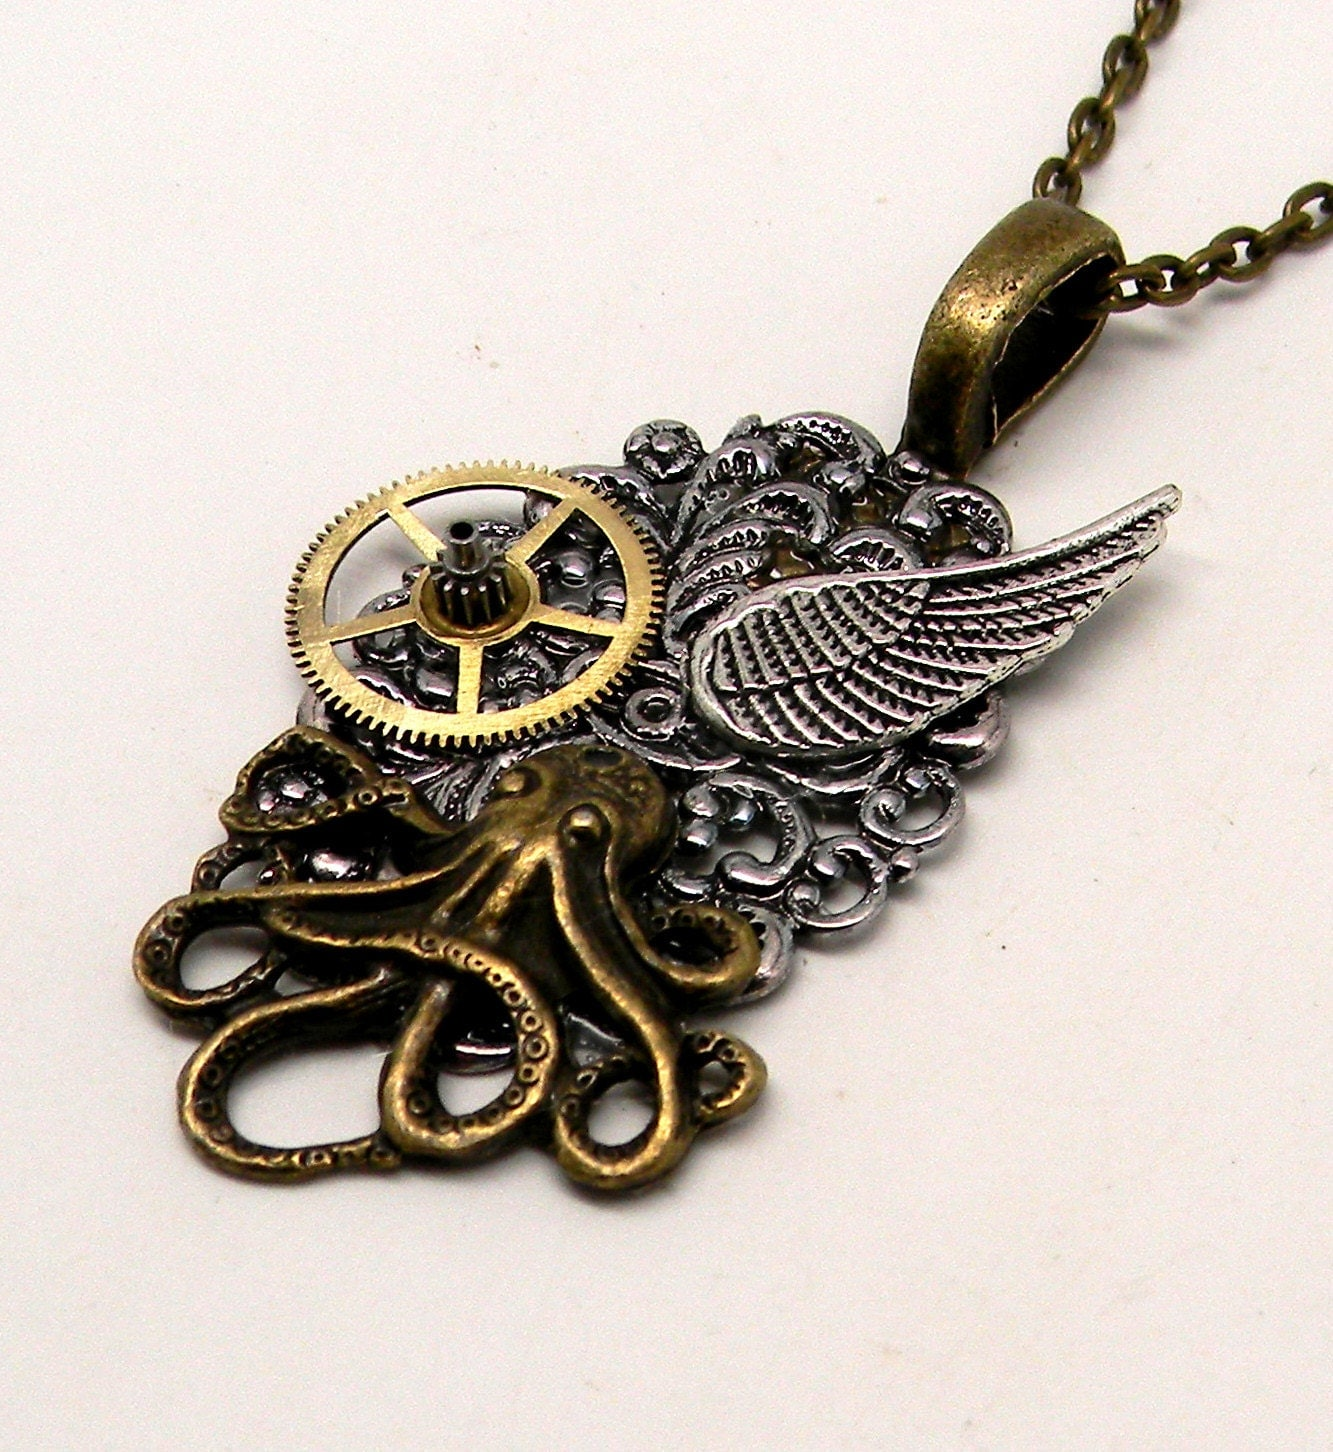 Steampunk Jewelry Octopus Necklace Pendant By Slotzkin On. Platinum Silver. Silver Infinity Anklet. December Rings. Princess Cut Diamond Pendant. Industrial Wedding Rings. Rebel Watches. Heart Cut Diamond. 100 Bands